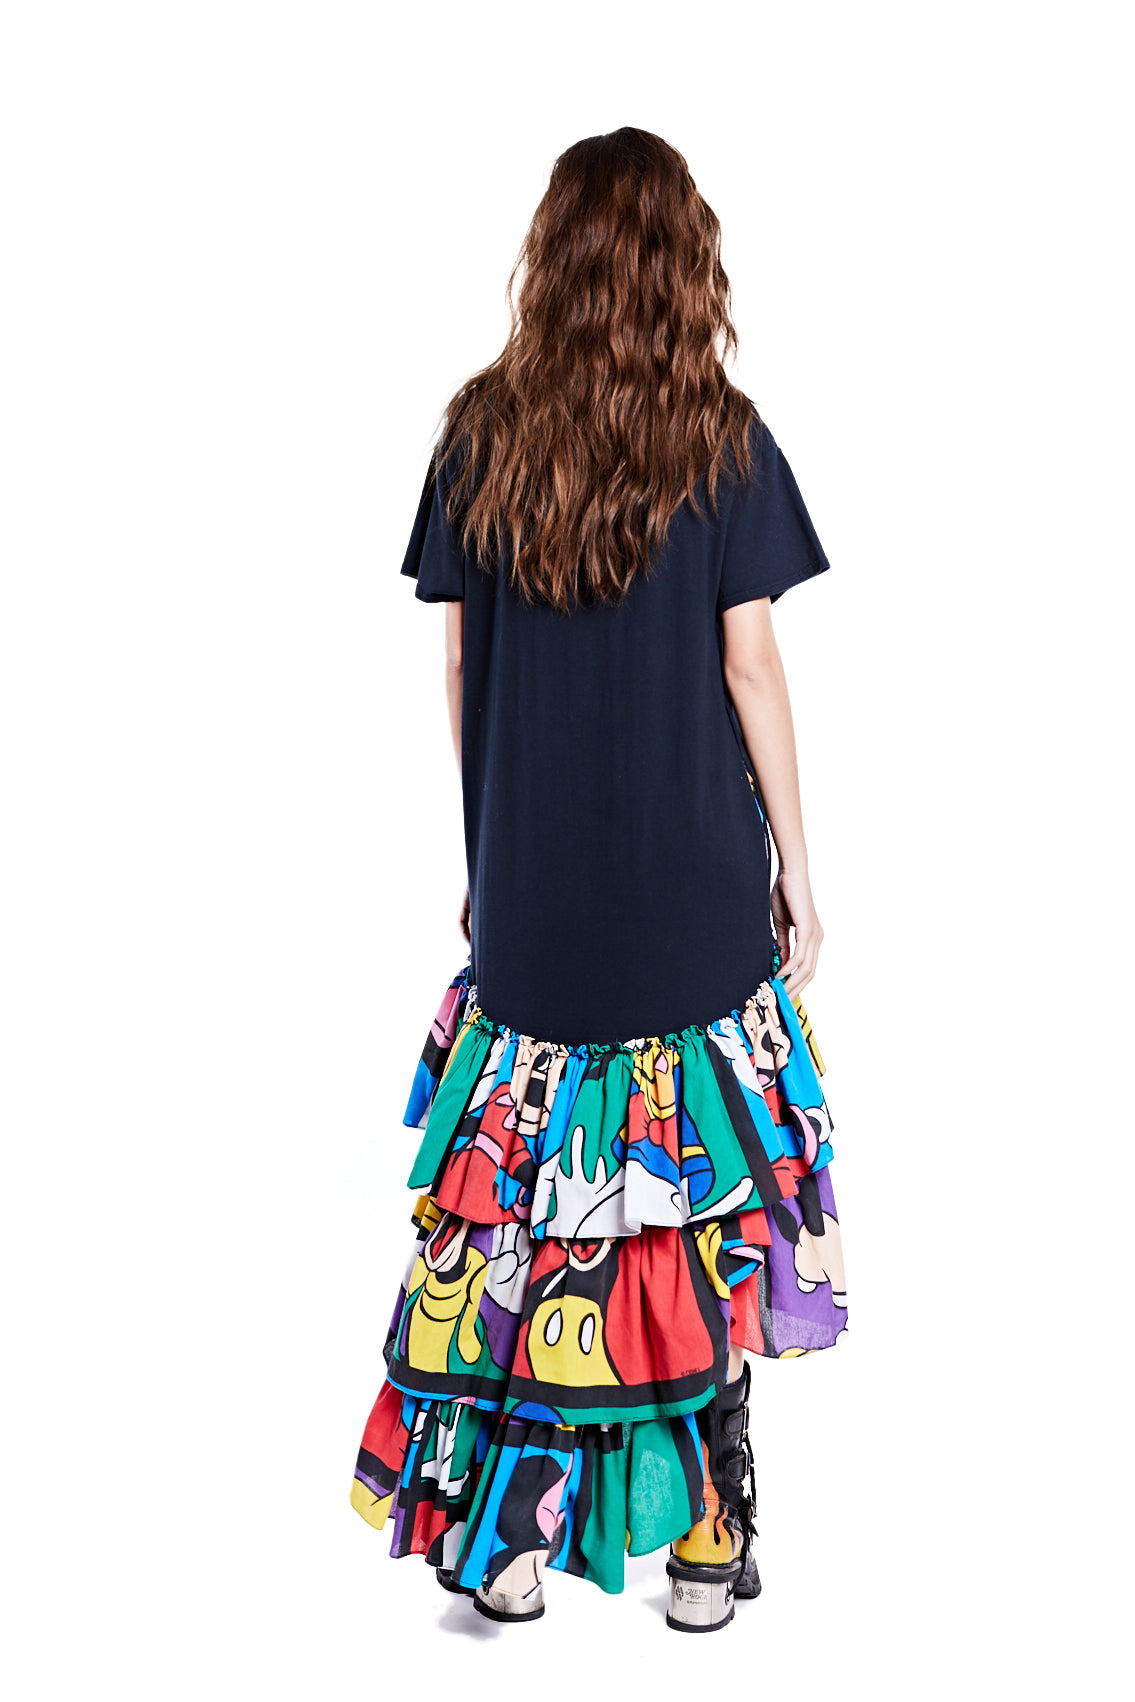 Mickey Dress - Multi-color